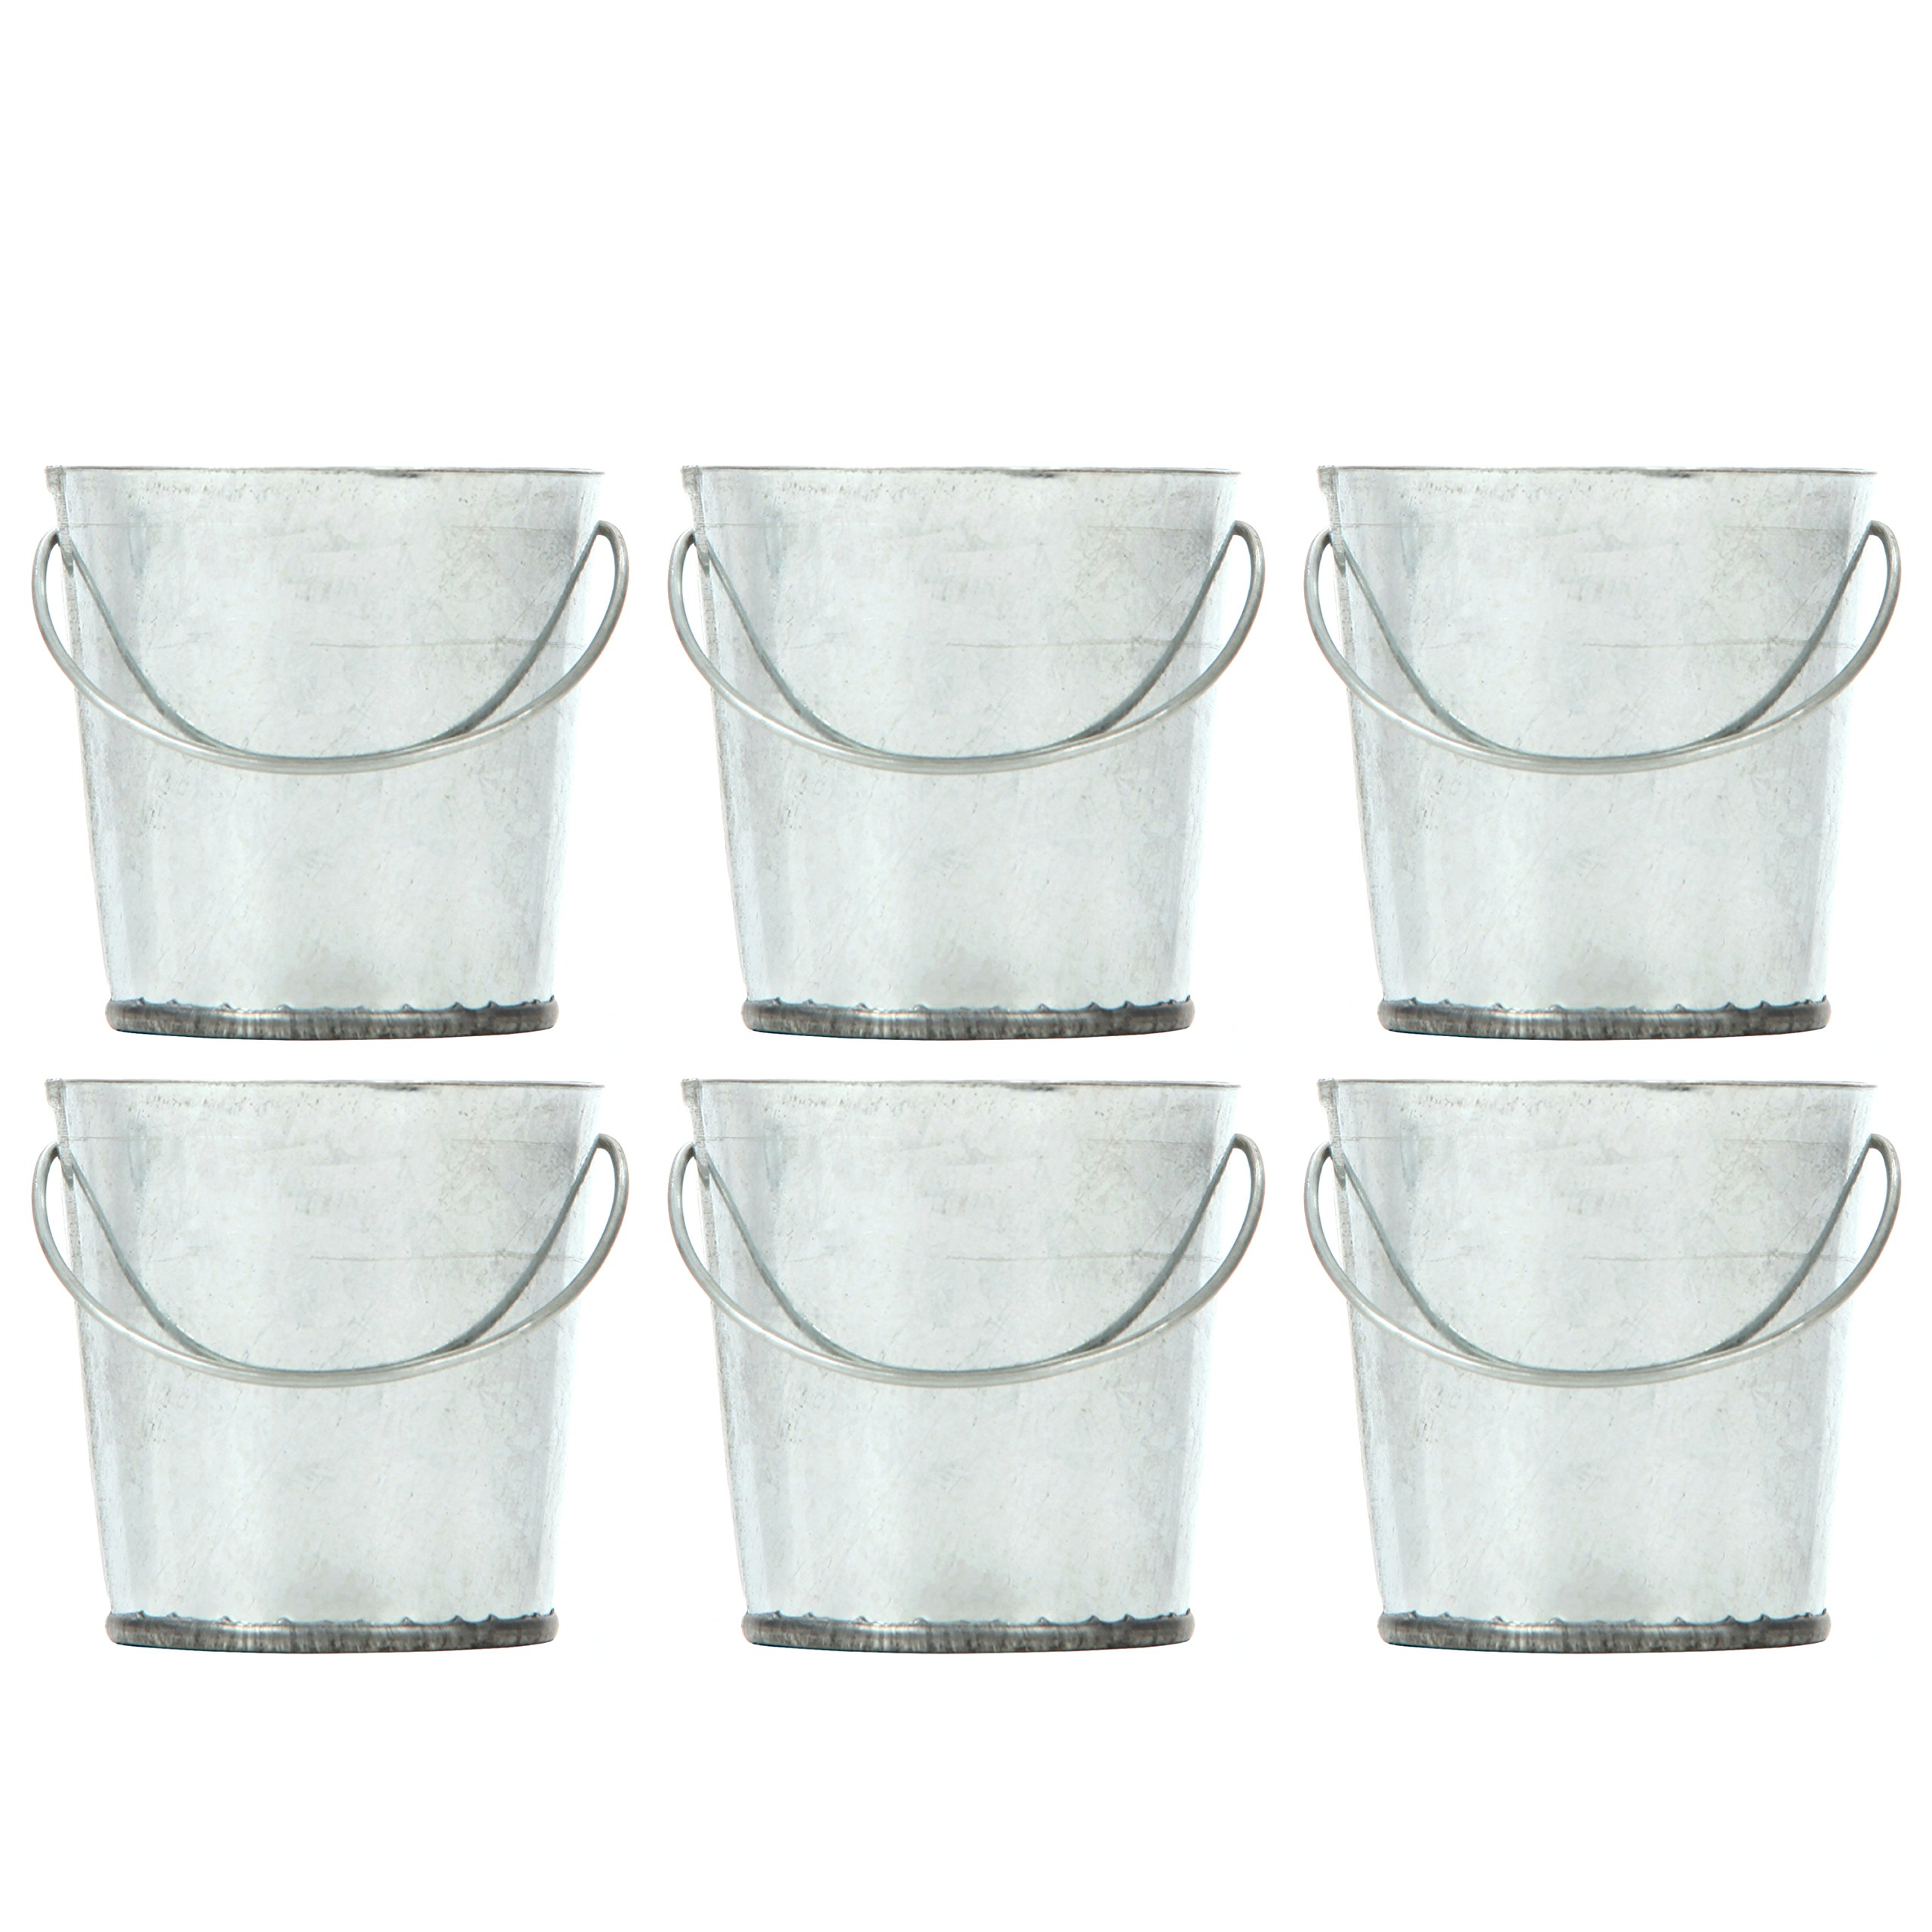 Hosley Set of 6 Mini Galvanized Buckets 2.25 Inches High Ideal for Do it Yourself Craft and Floral Projects Party Favors Festivities Weddings O4